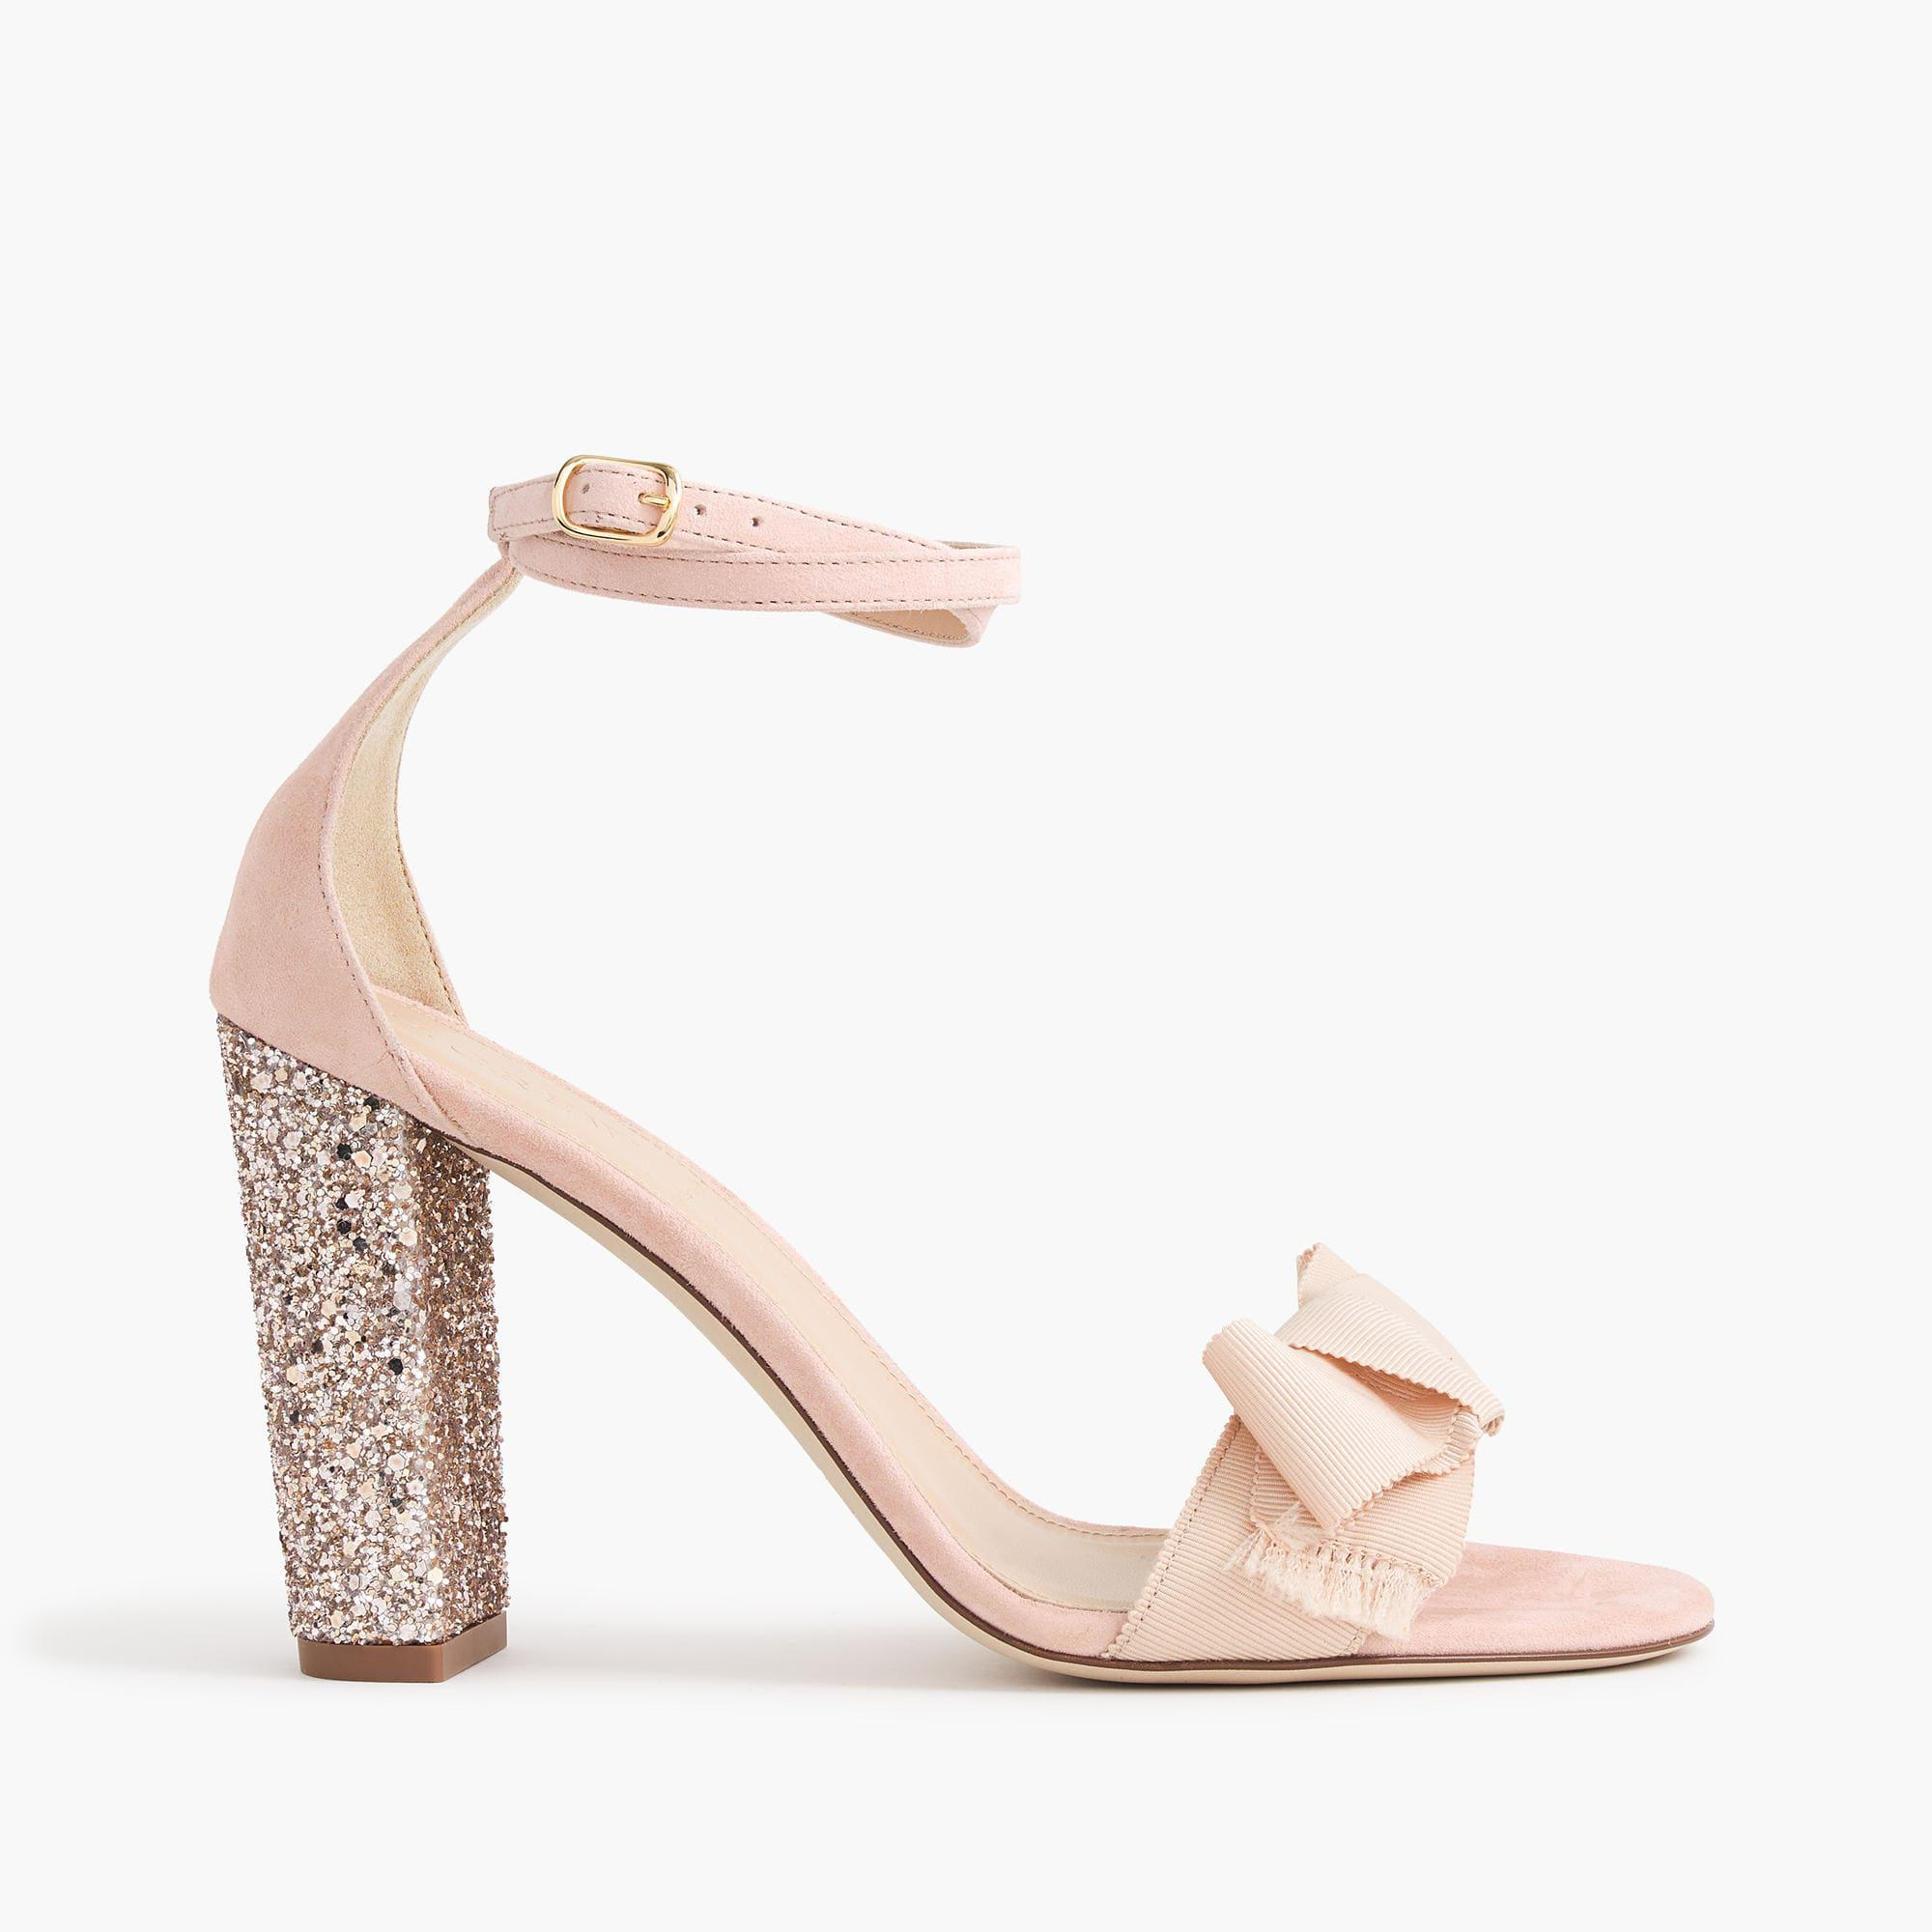 16546fc76b9 Lyst - J.Crew Suede Sandals With Glitter Heels